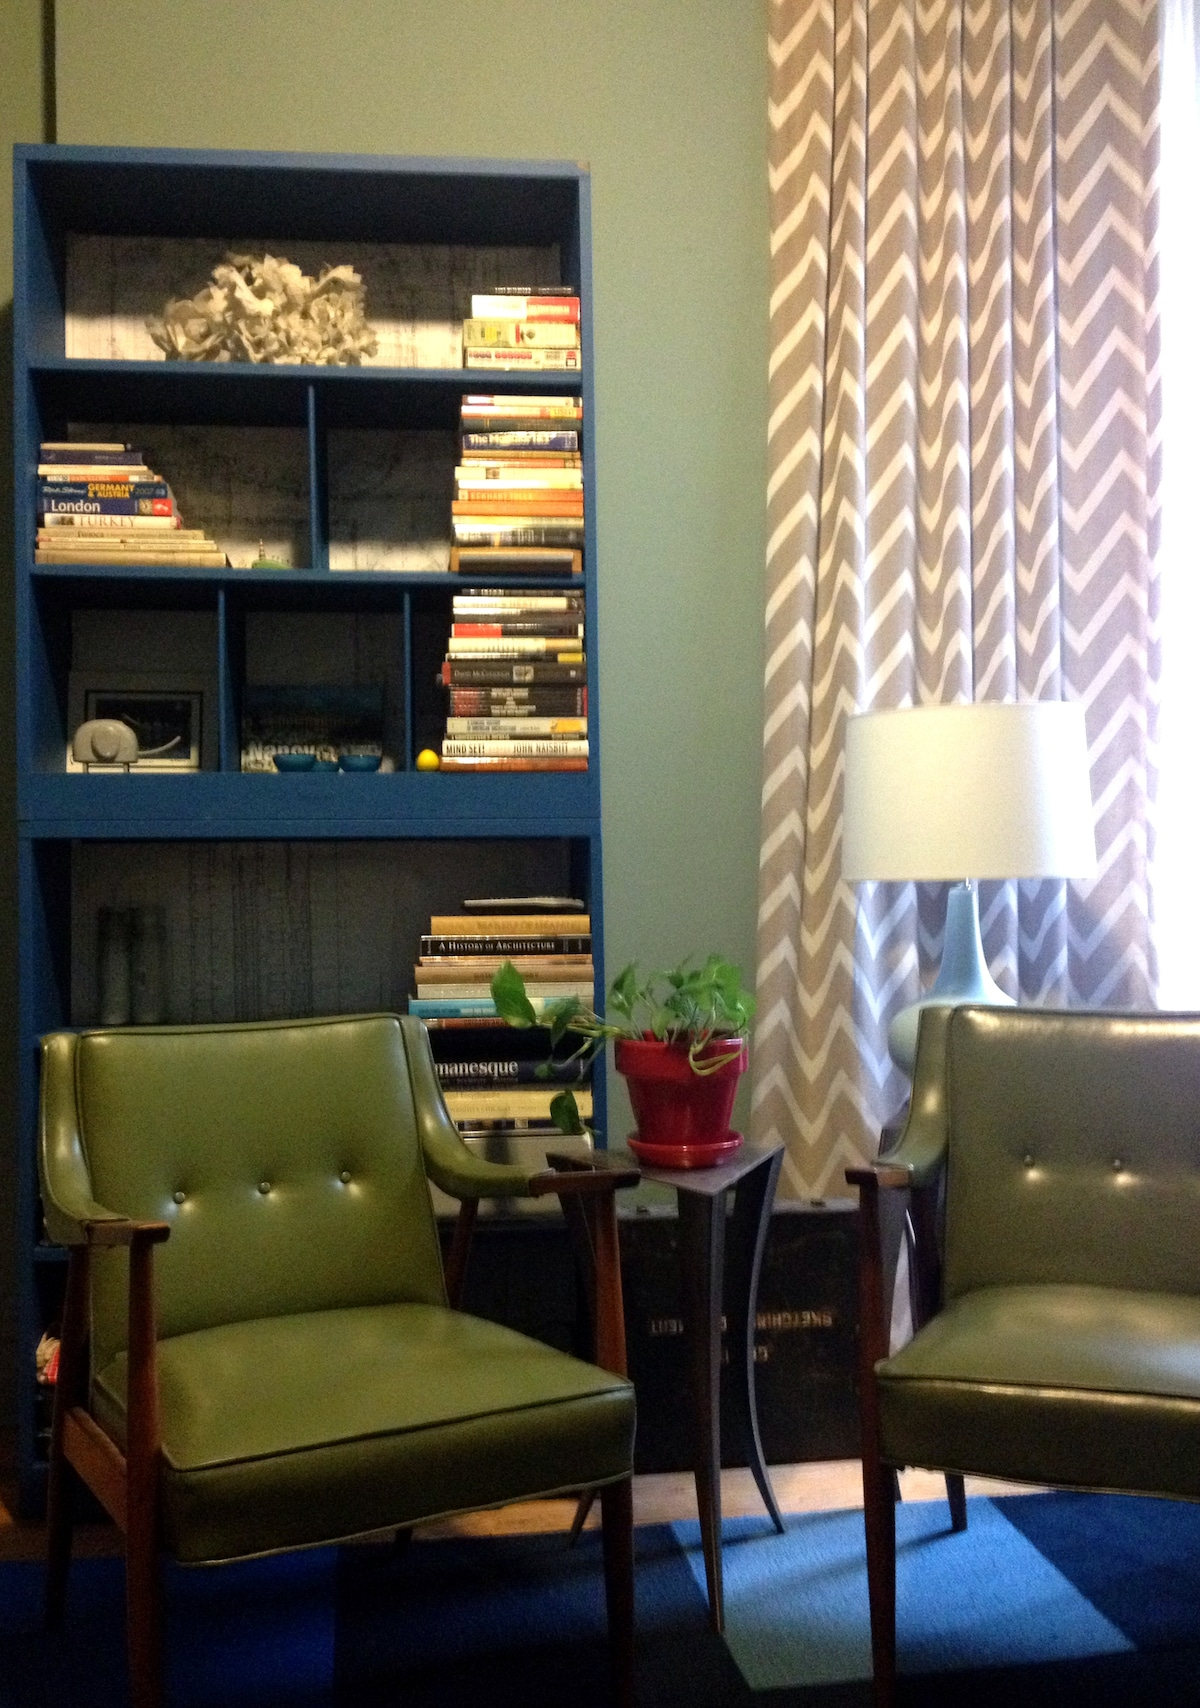 My eclectic living space. Mid-century modern armchairs with vintage school bookshelves makes the space super comfy.